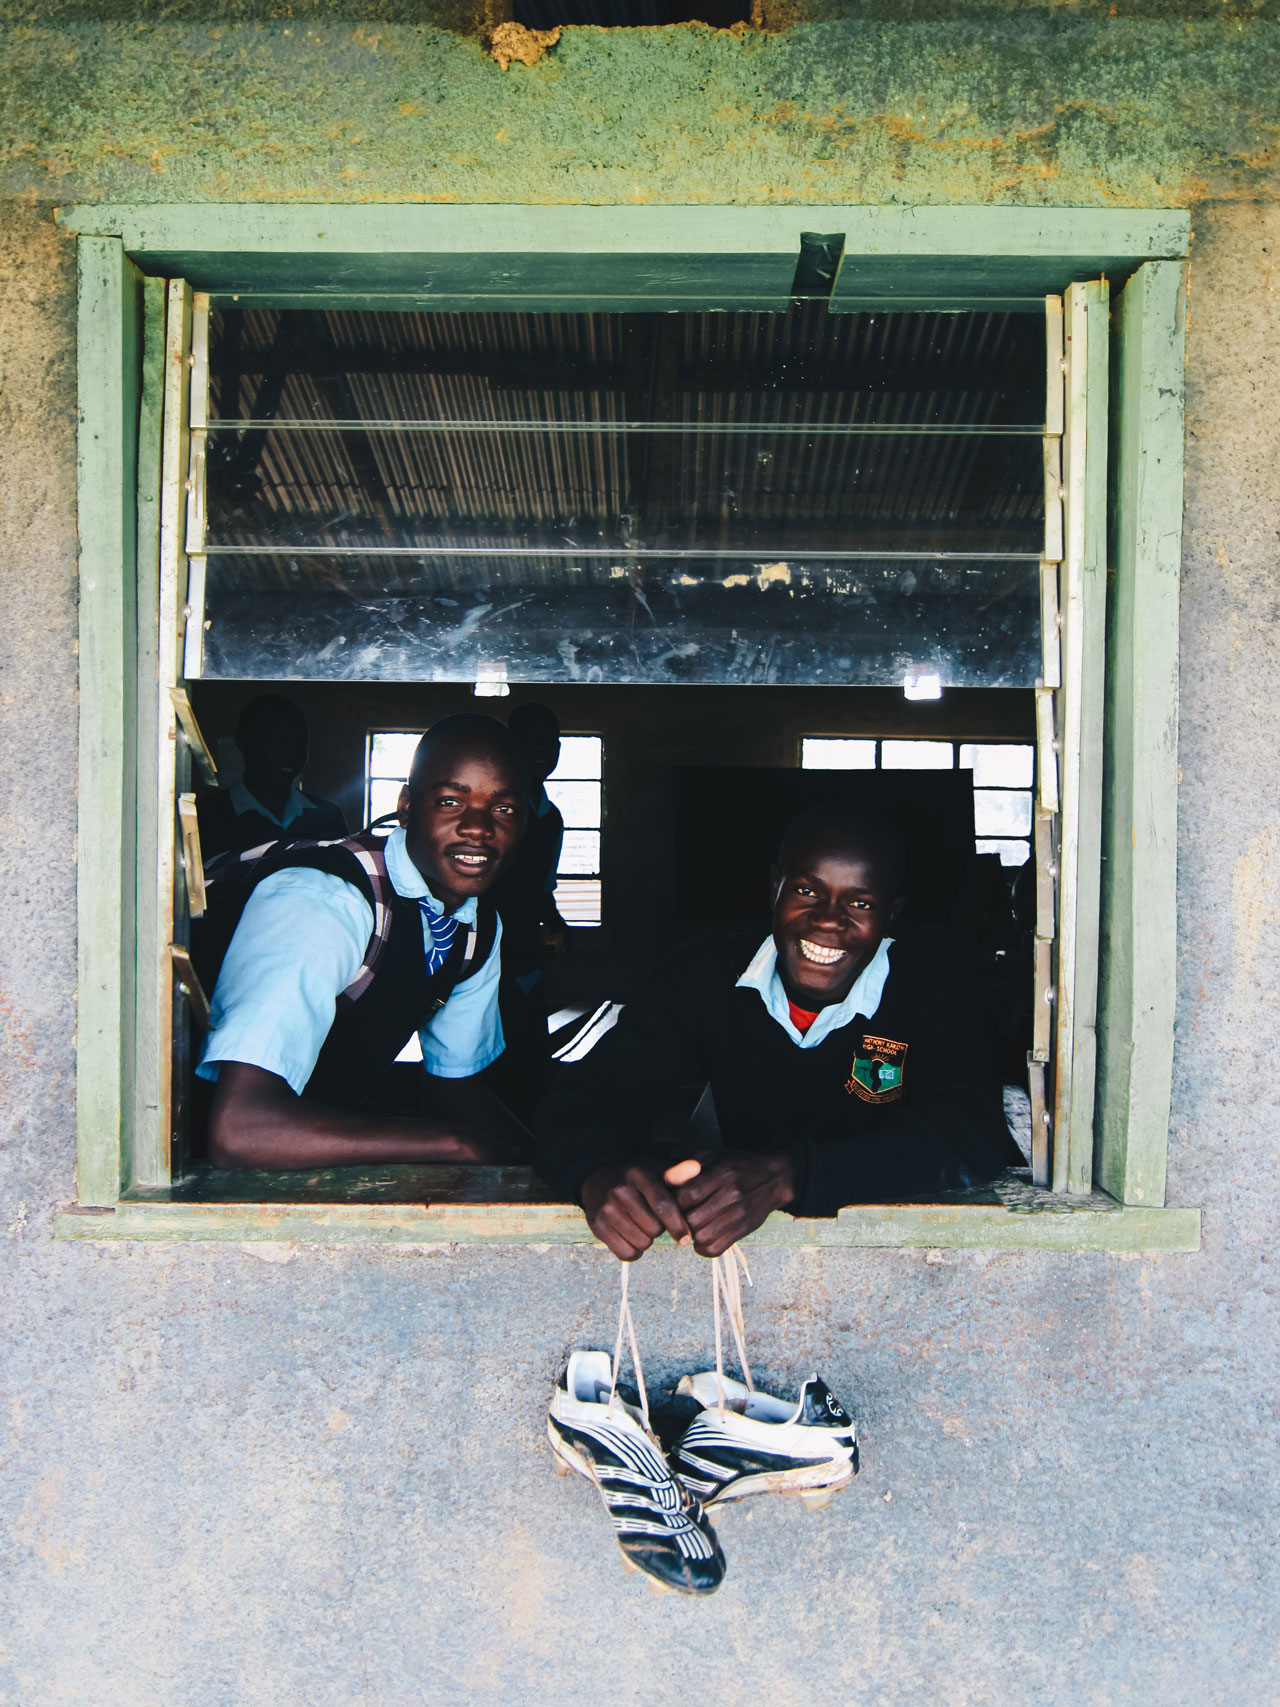 kenya-journals-boys-window-crossbar.jpg